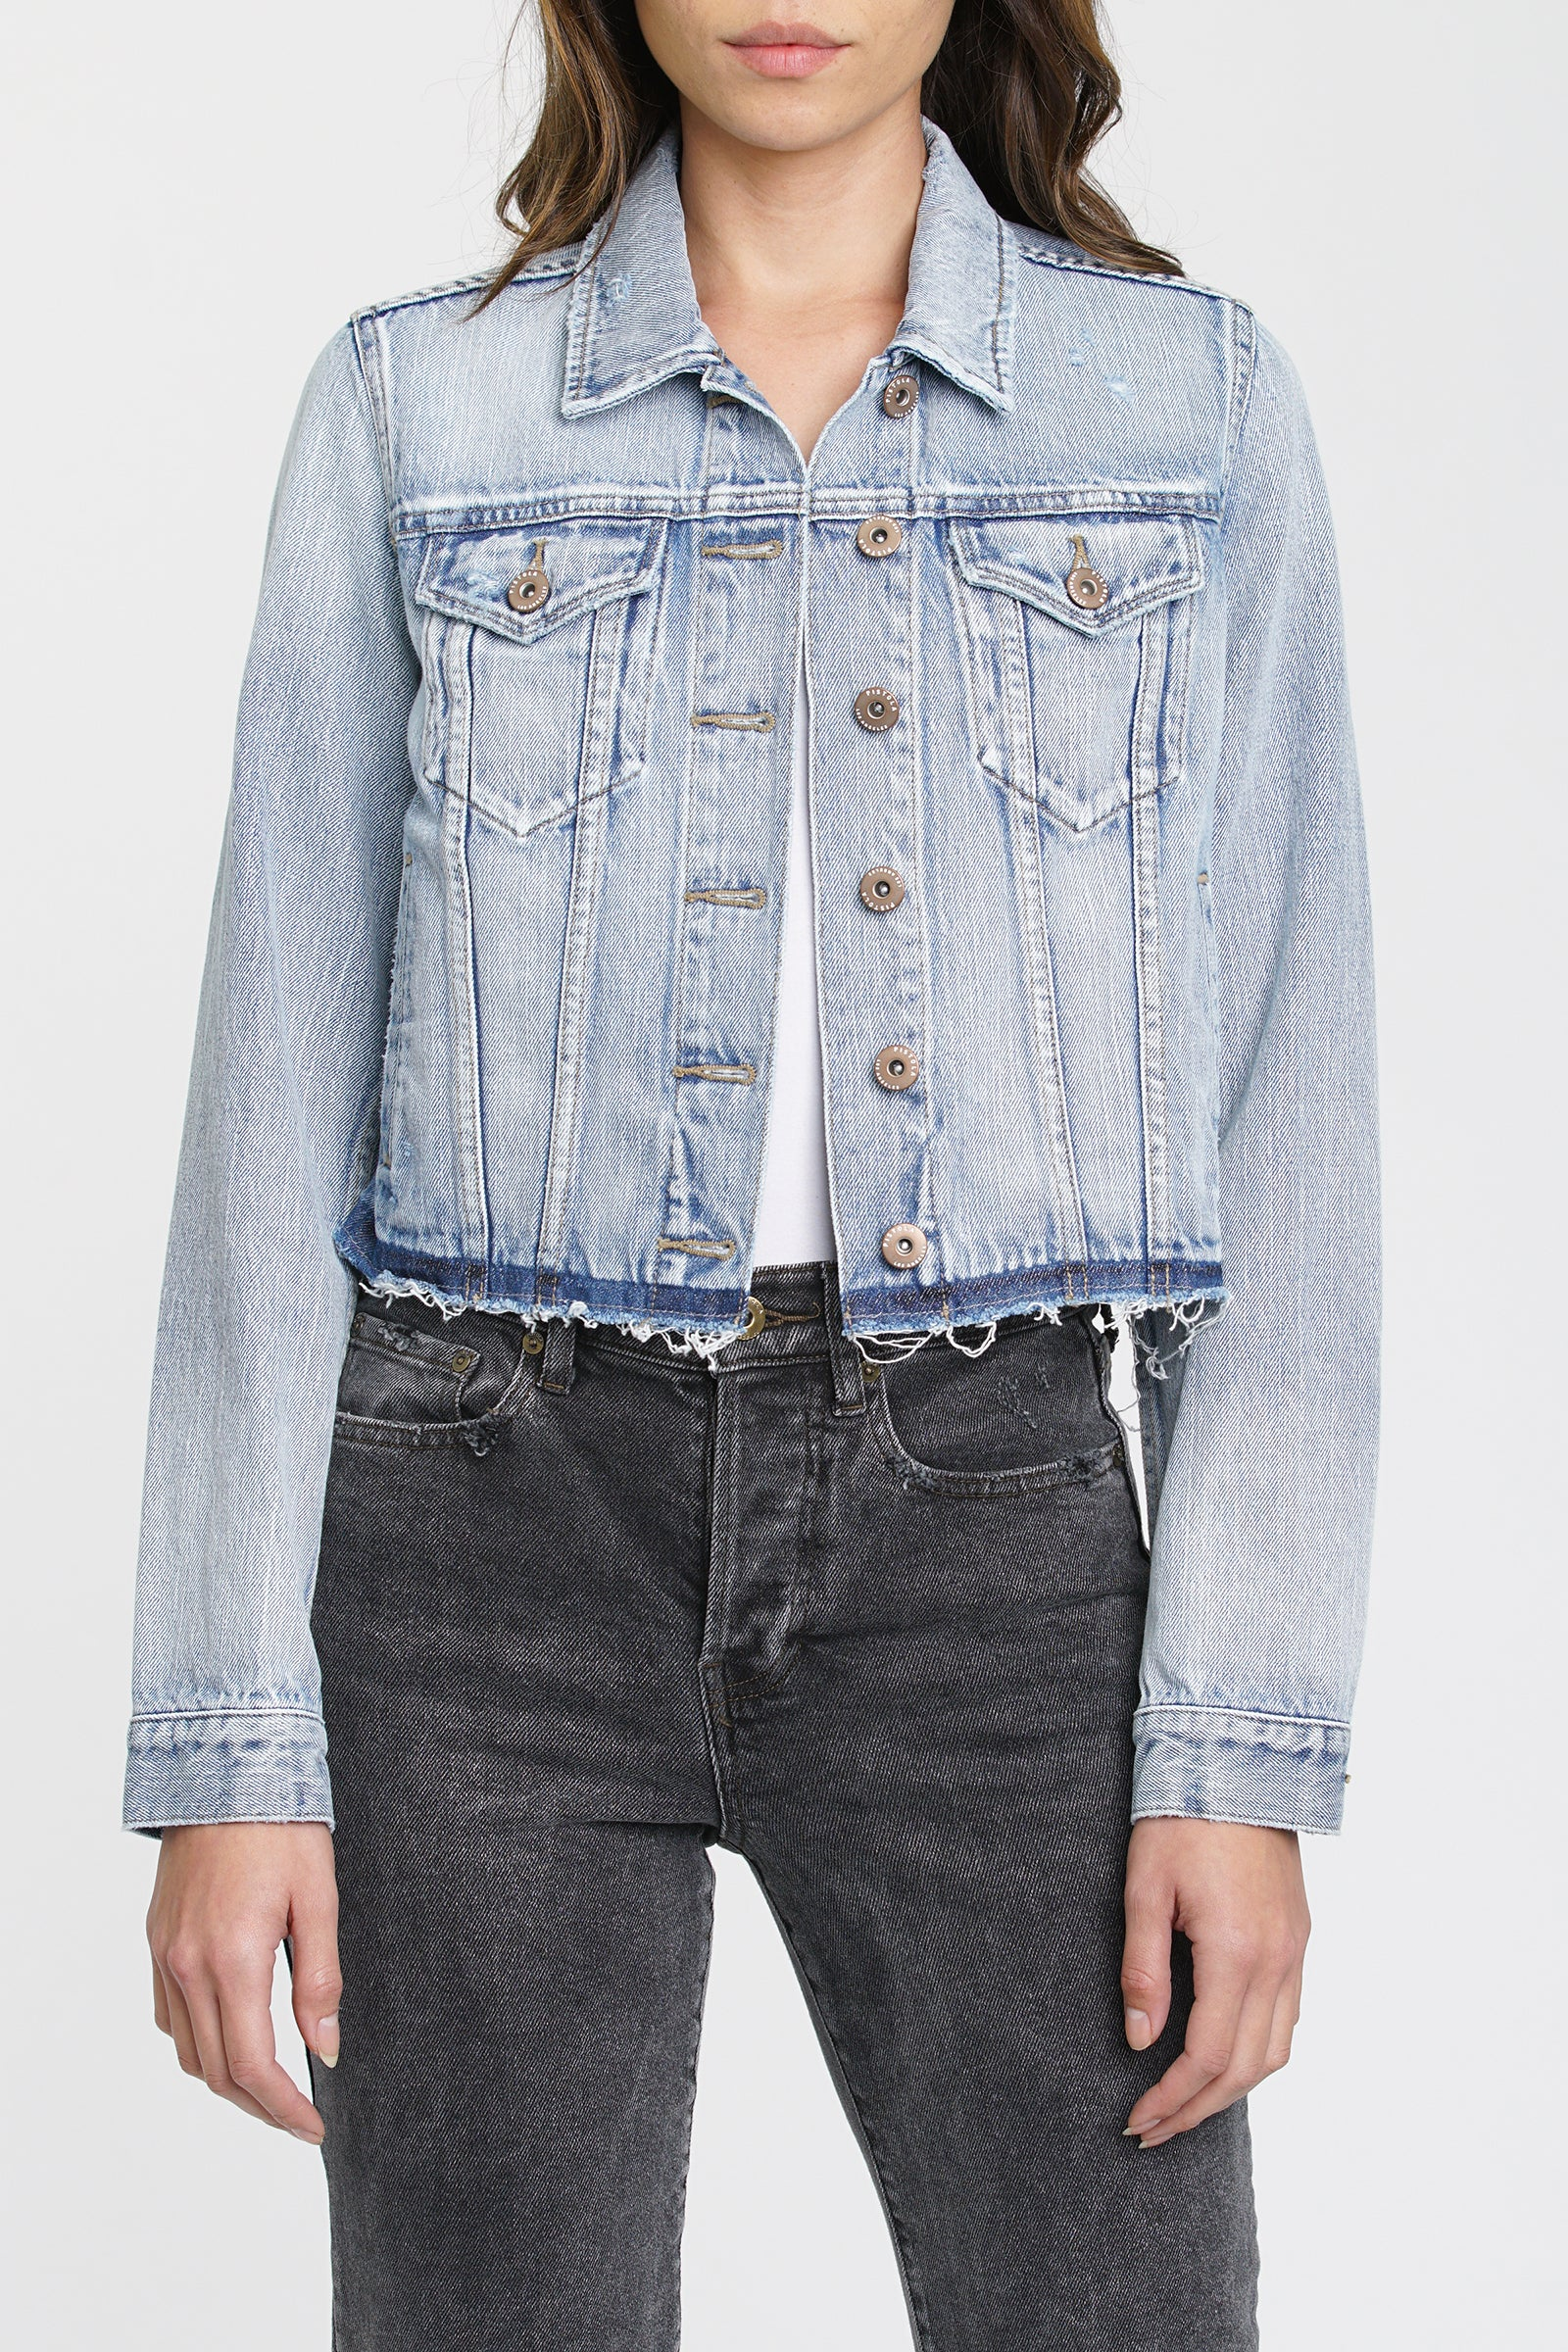 Brando Crop Fitted Denim Jacket - Bowie